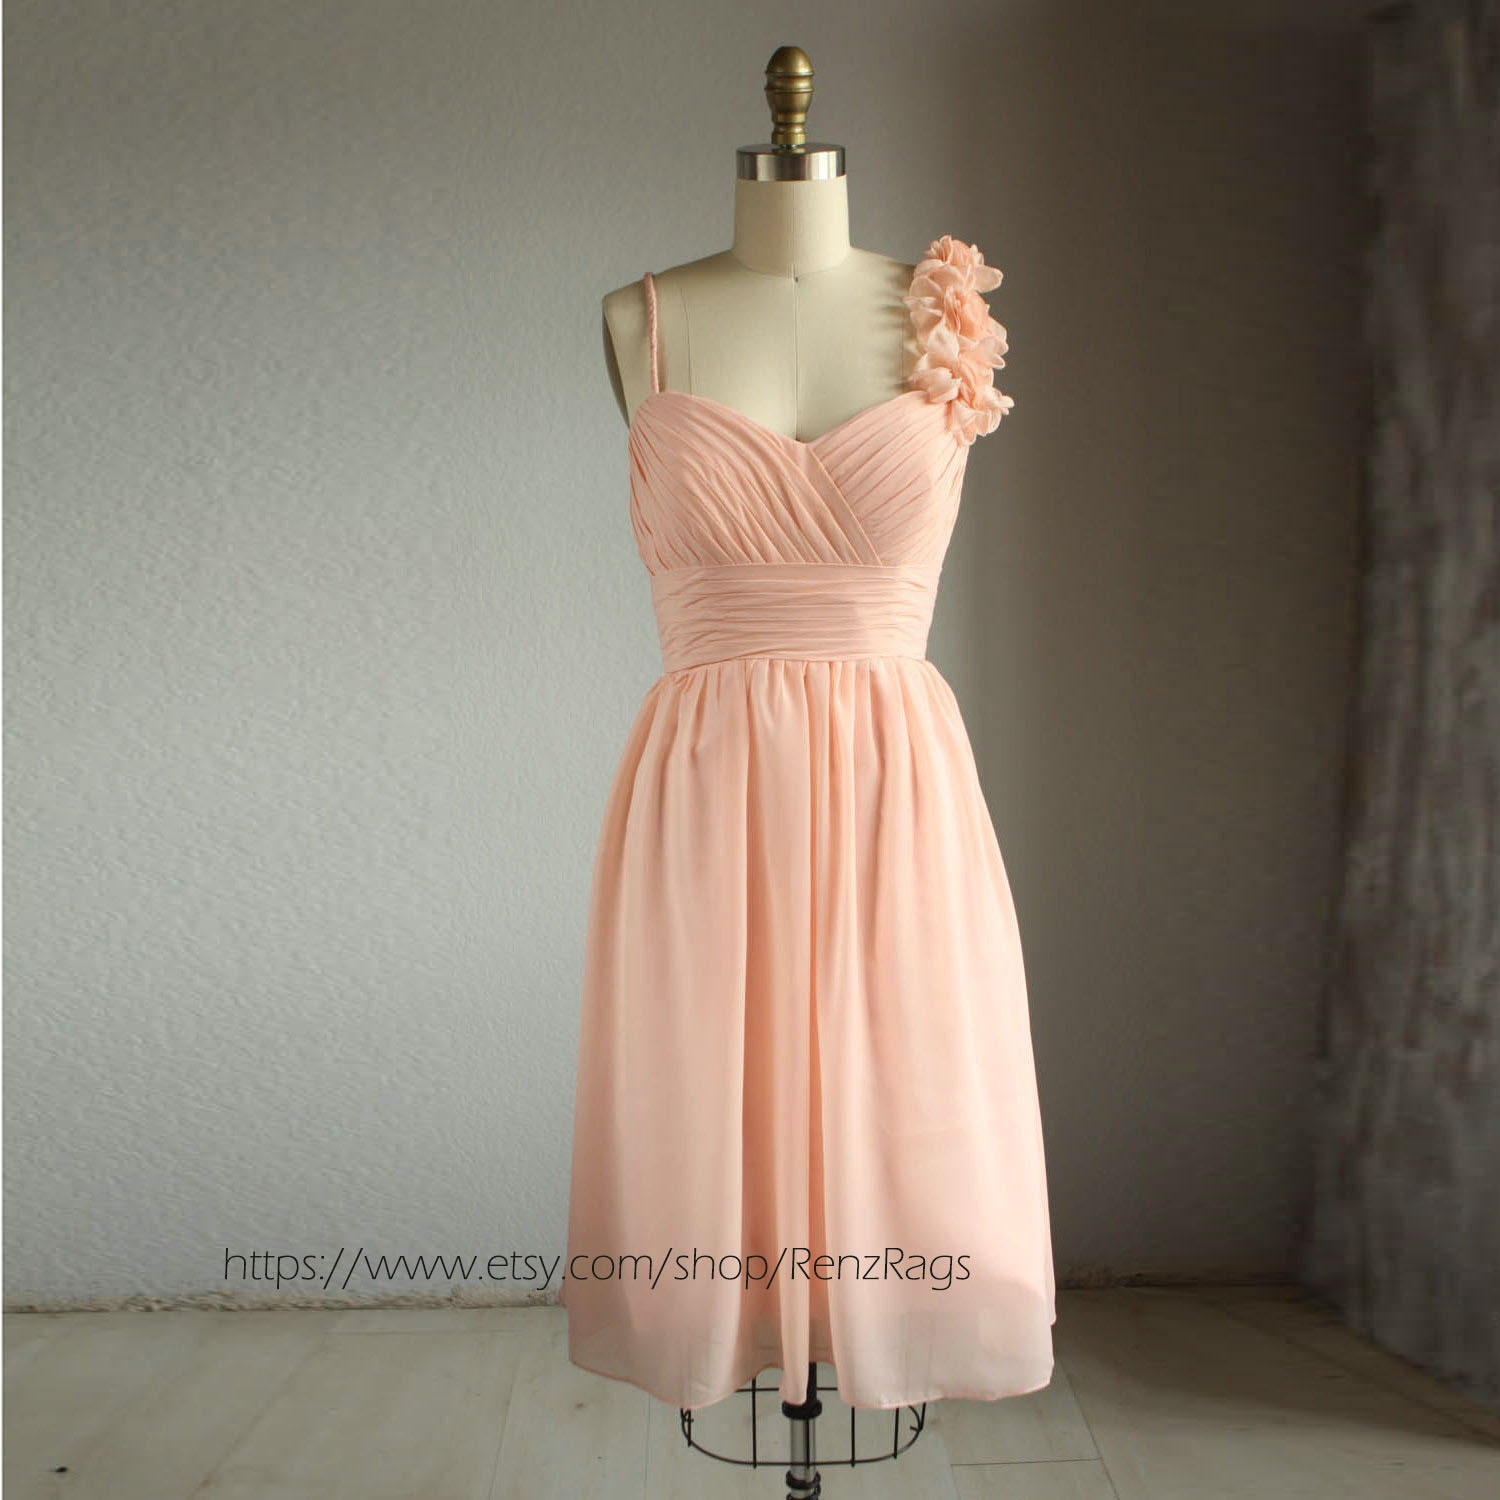 Bridesmaid Dress Peach Chiffon DressWedding DressHandmade